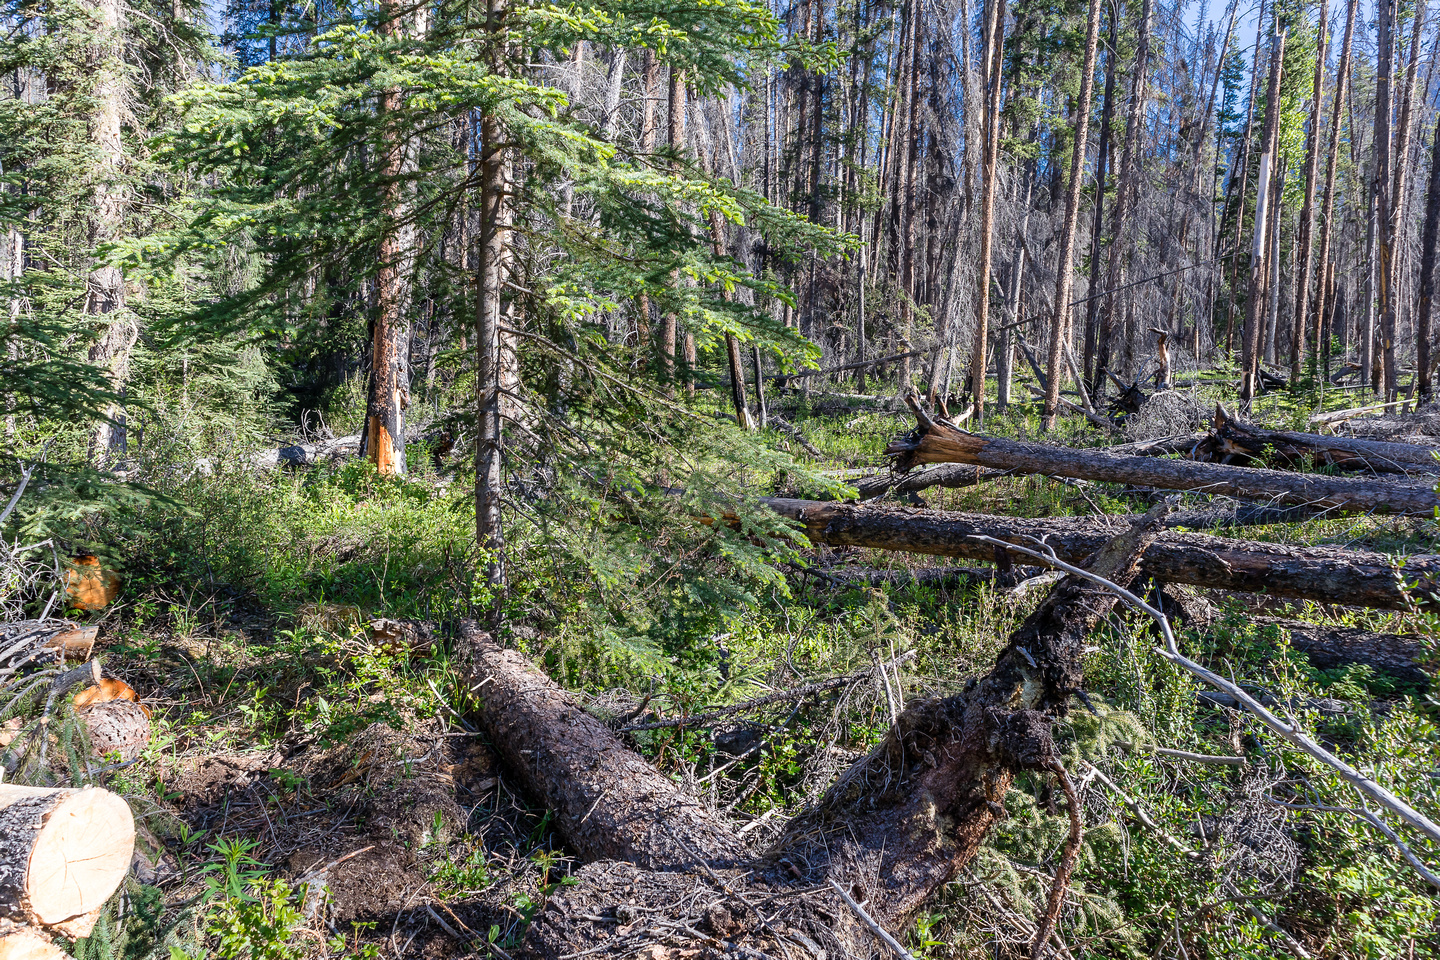 The trail is cut through some nasty sections of deadfall and burnt forest.